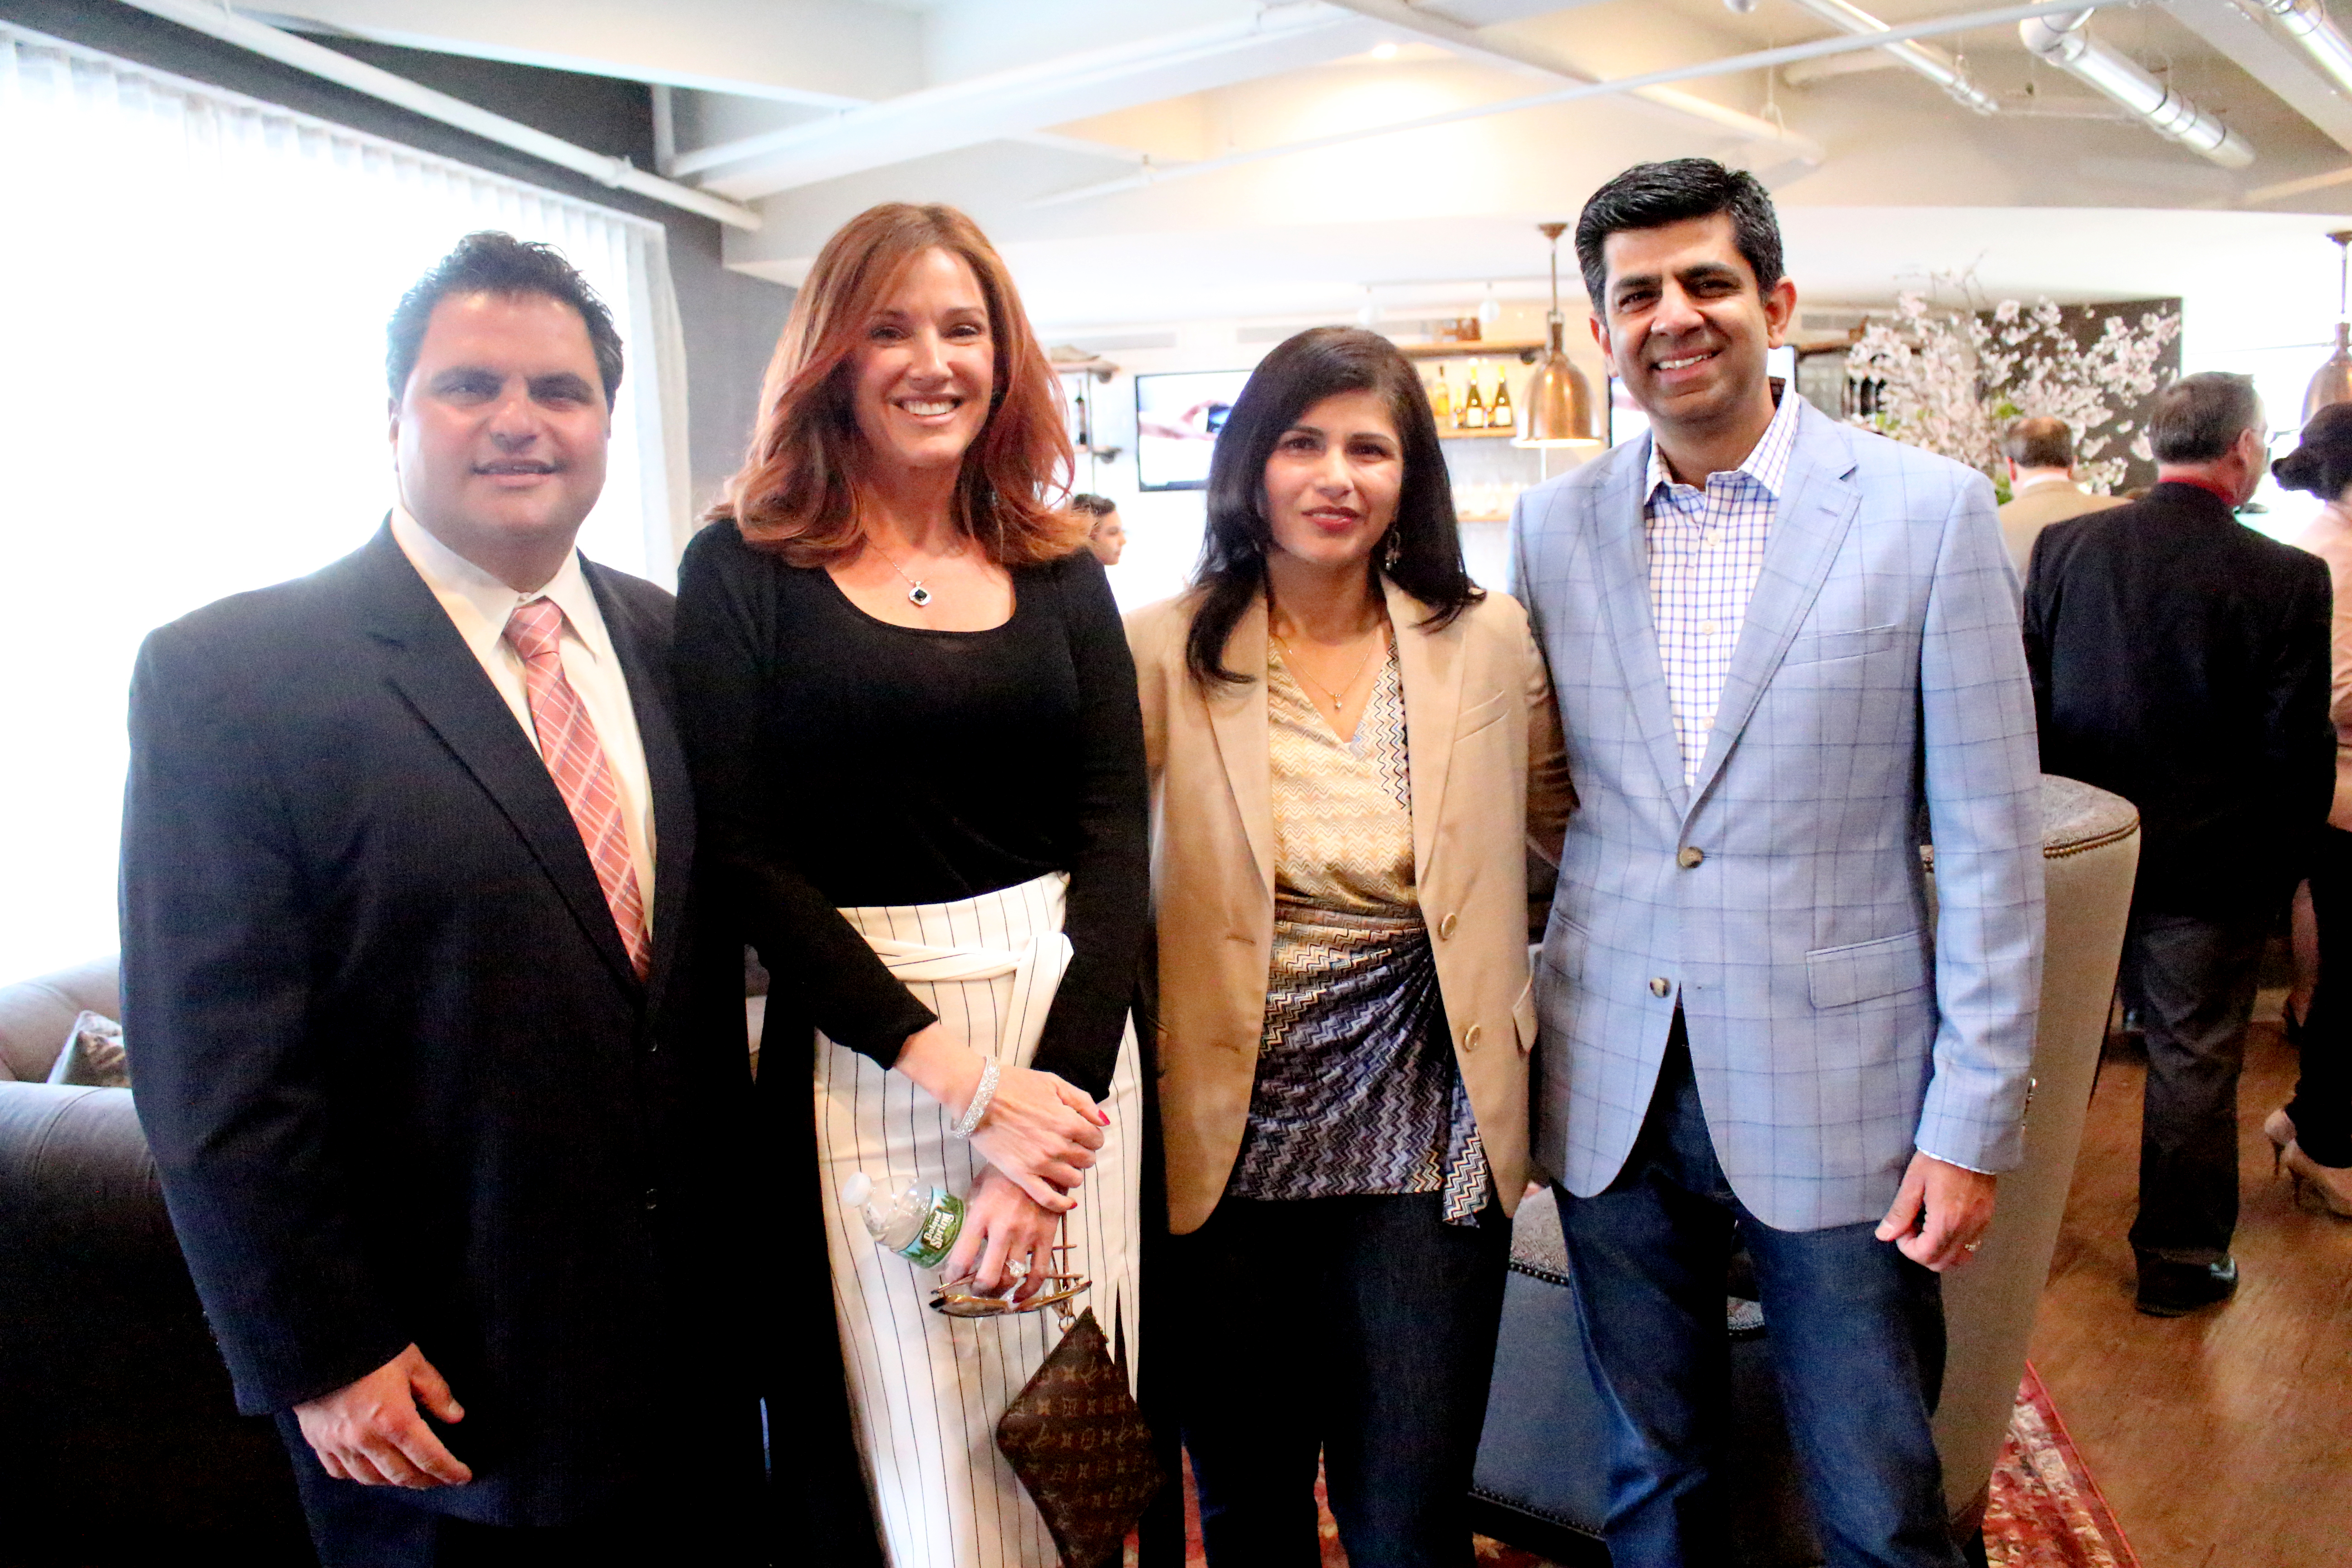 "City ""enVisions"" bright future as first hotel opens --- A VISION COME TRUE: Mayor Carlo DeMaria and his wife, Stacy, are shown with Global Vision Hotels President Gautam Sharma and Principal/Senior Vice President Revenue Development Shikha Talwar at the ribbon-cutting ceremony for enVision Hotel Everett on Monday, April 10. -- A boutique hotel featuring 101 rooms, its design, which was developed by Jessica Smith, evokes the history of Everett and the 95-year-old building's past as a shoe factory – from the front desk and a stack of vintage suitcases to design elements like old maps and sewing machines. The hotel also features a café, lounge and 1,300 sq. ft. meeting room on the ground floor able to accommodate about 50 people. A separate building connected to the hotel will feature a fitness center."